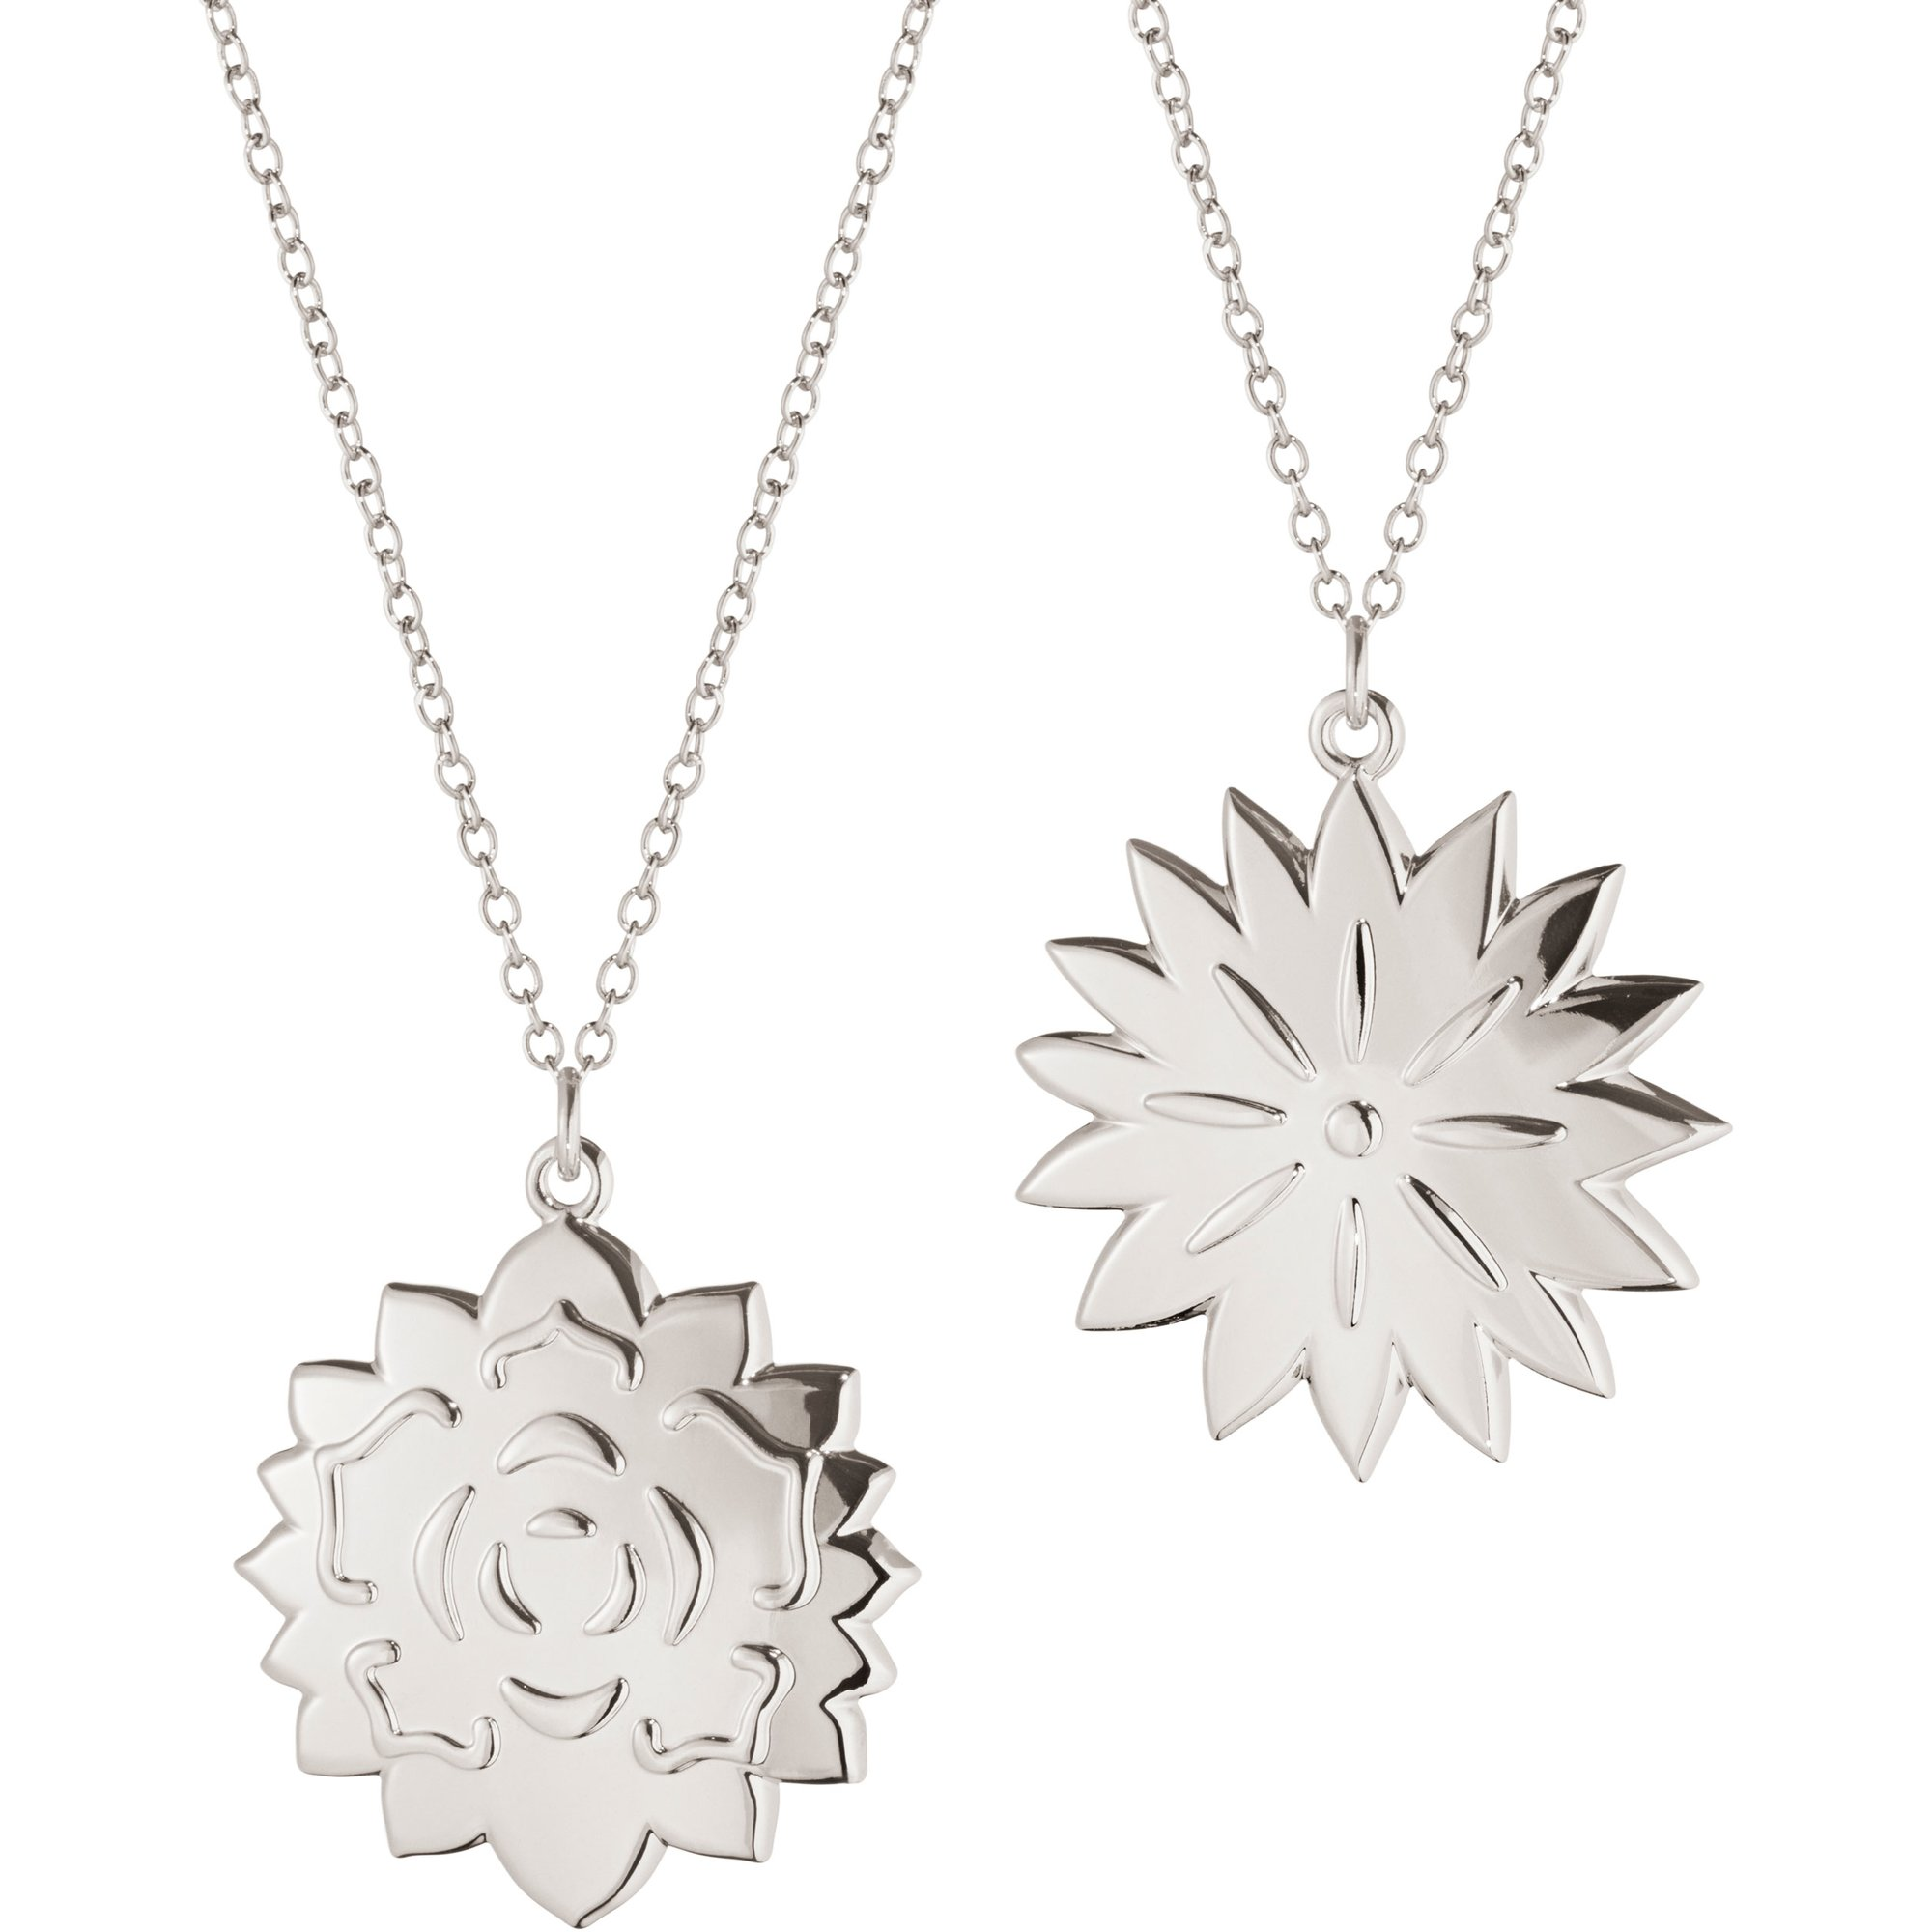 Georg Jensen 2020 Ornament Ice Dianthus & Rosette palladium